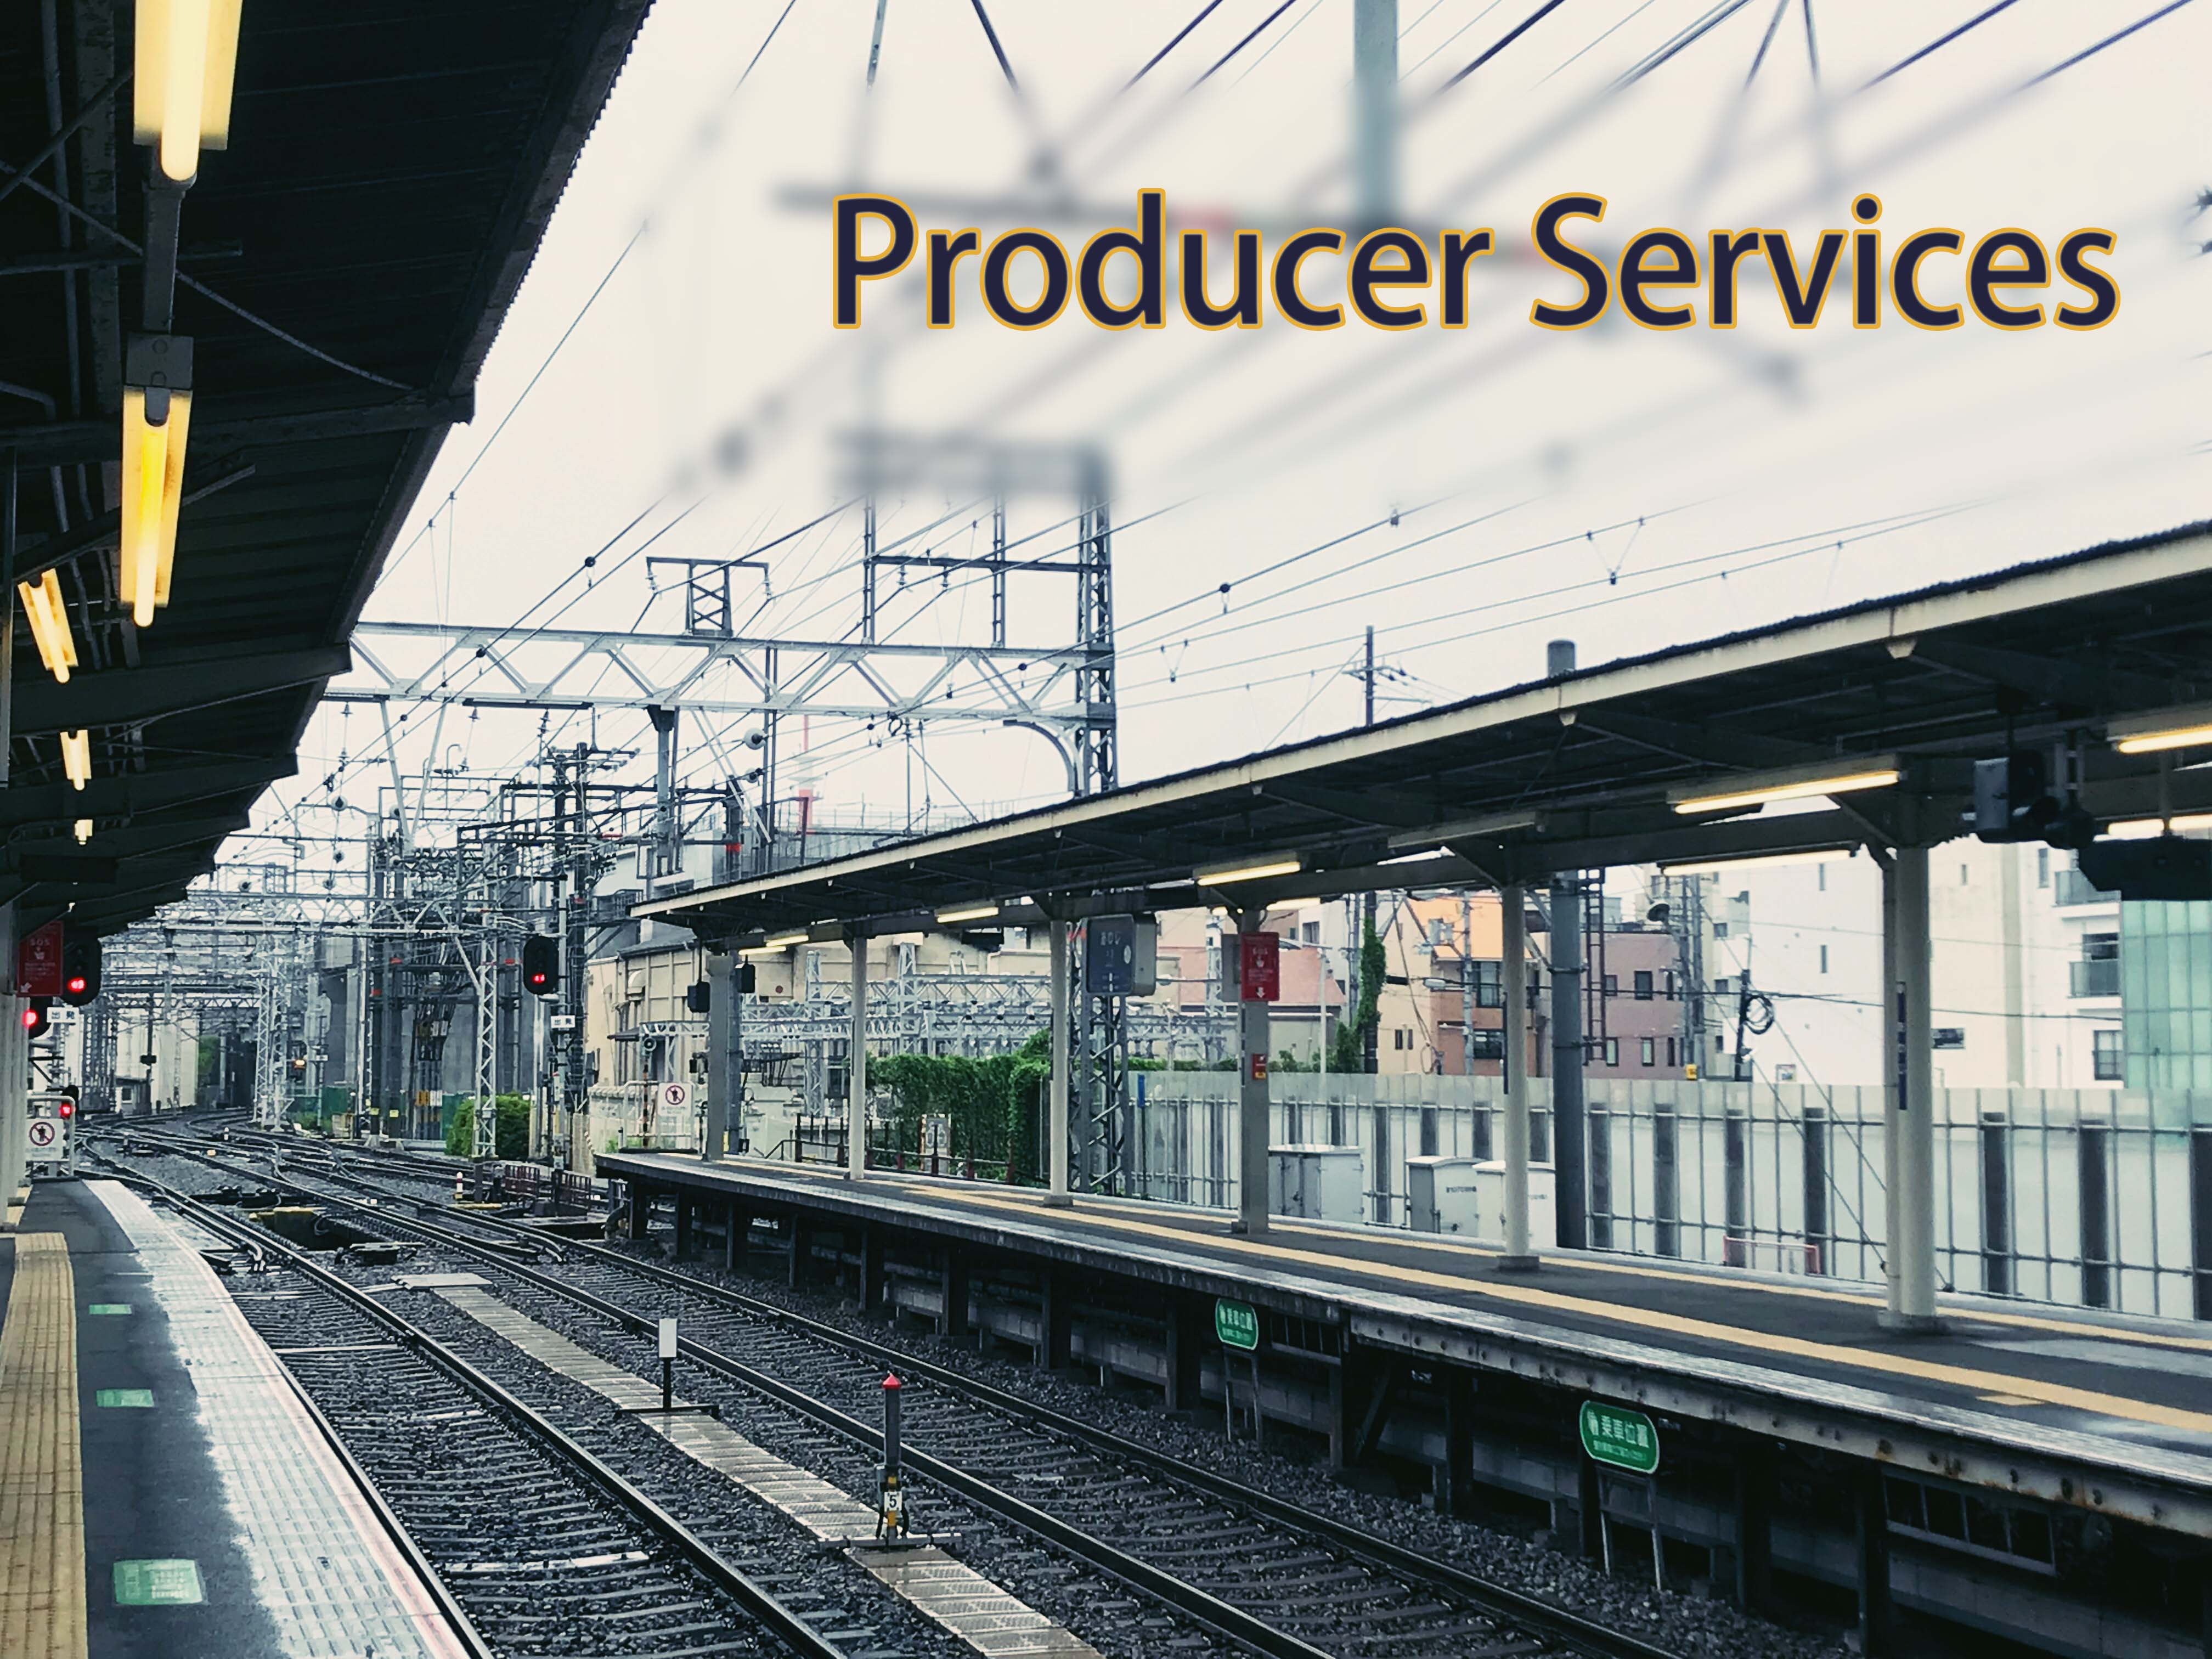 Development Trends of Producer Service Industries